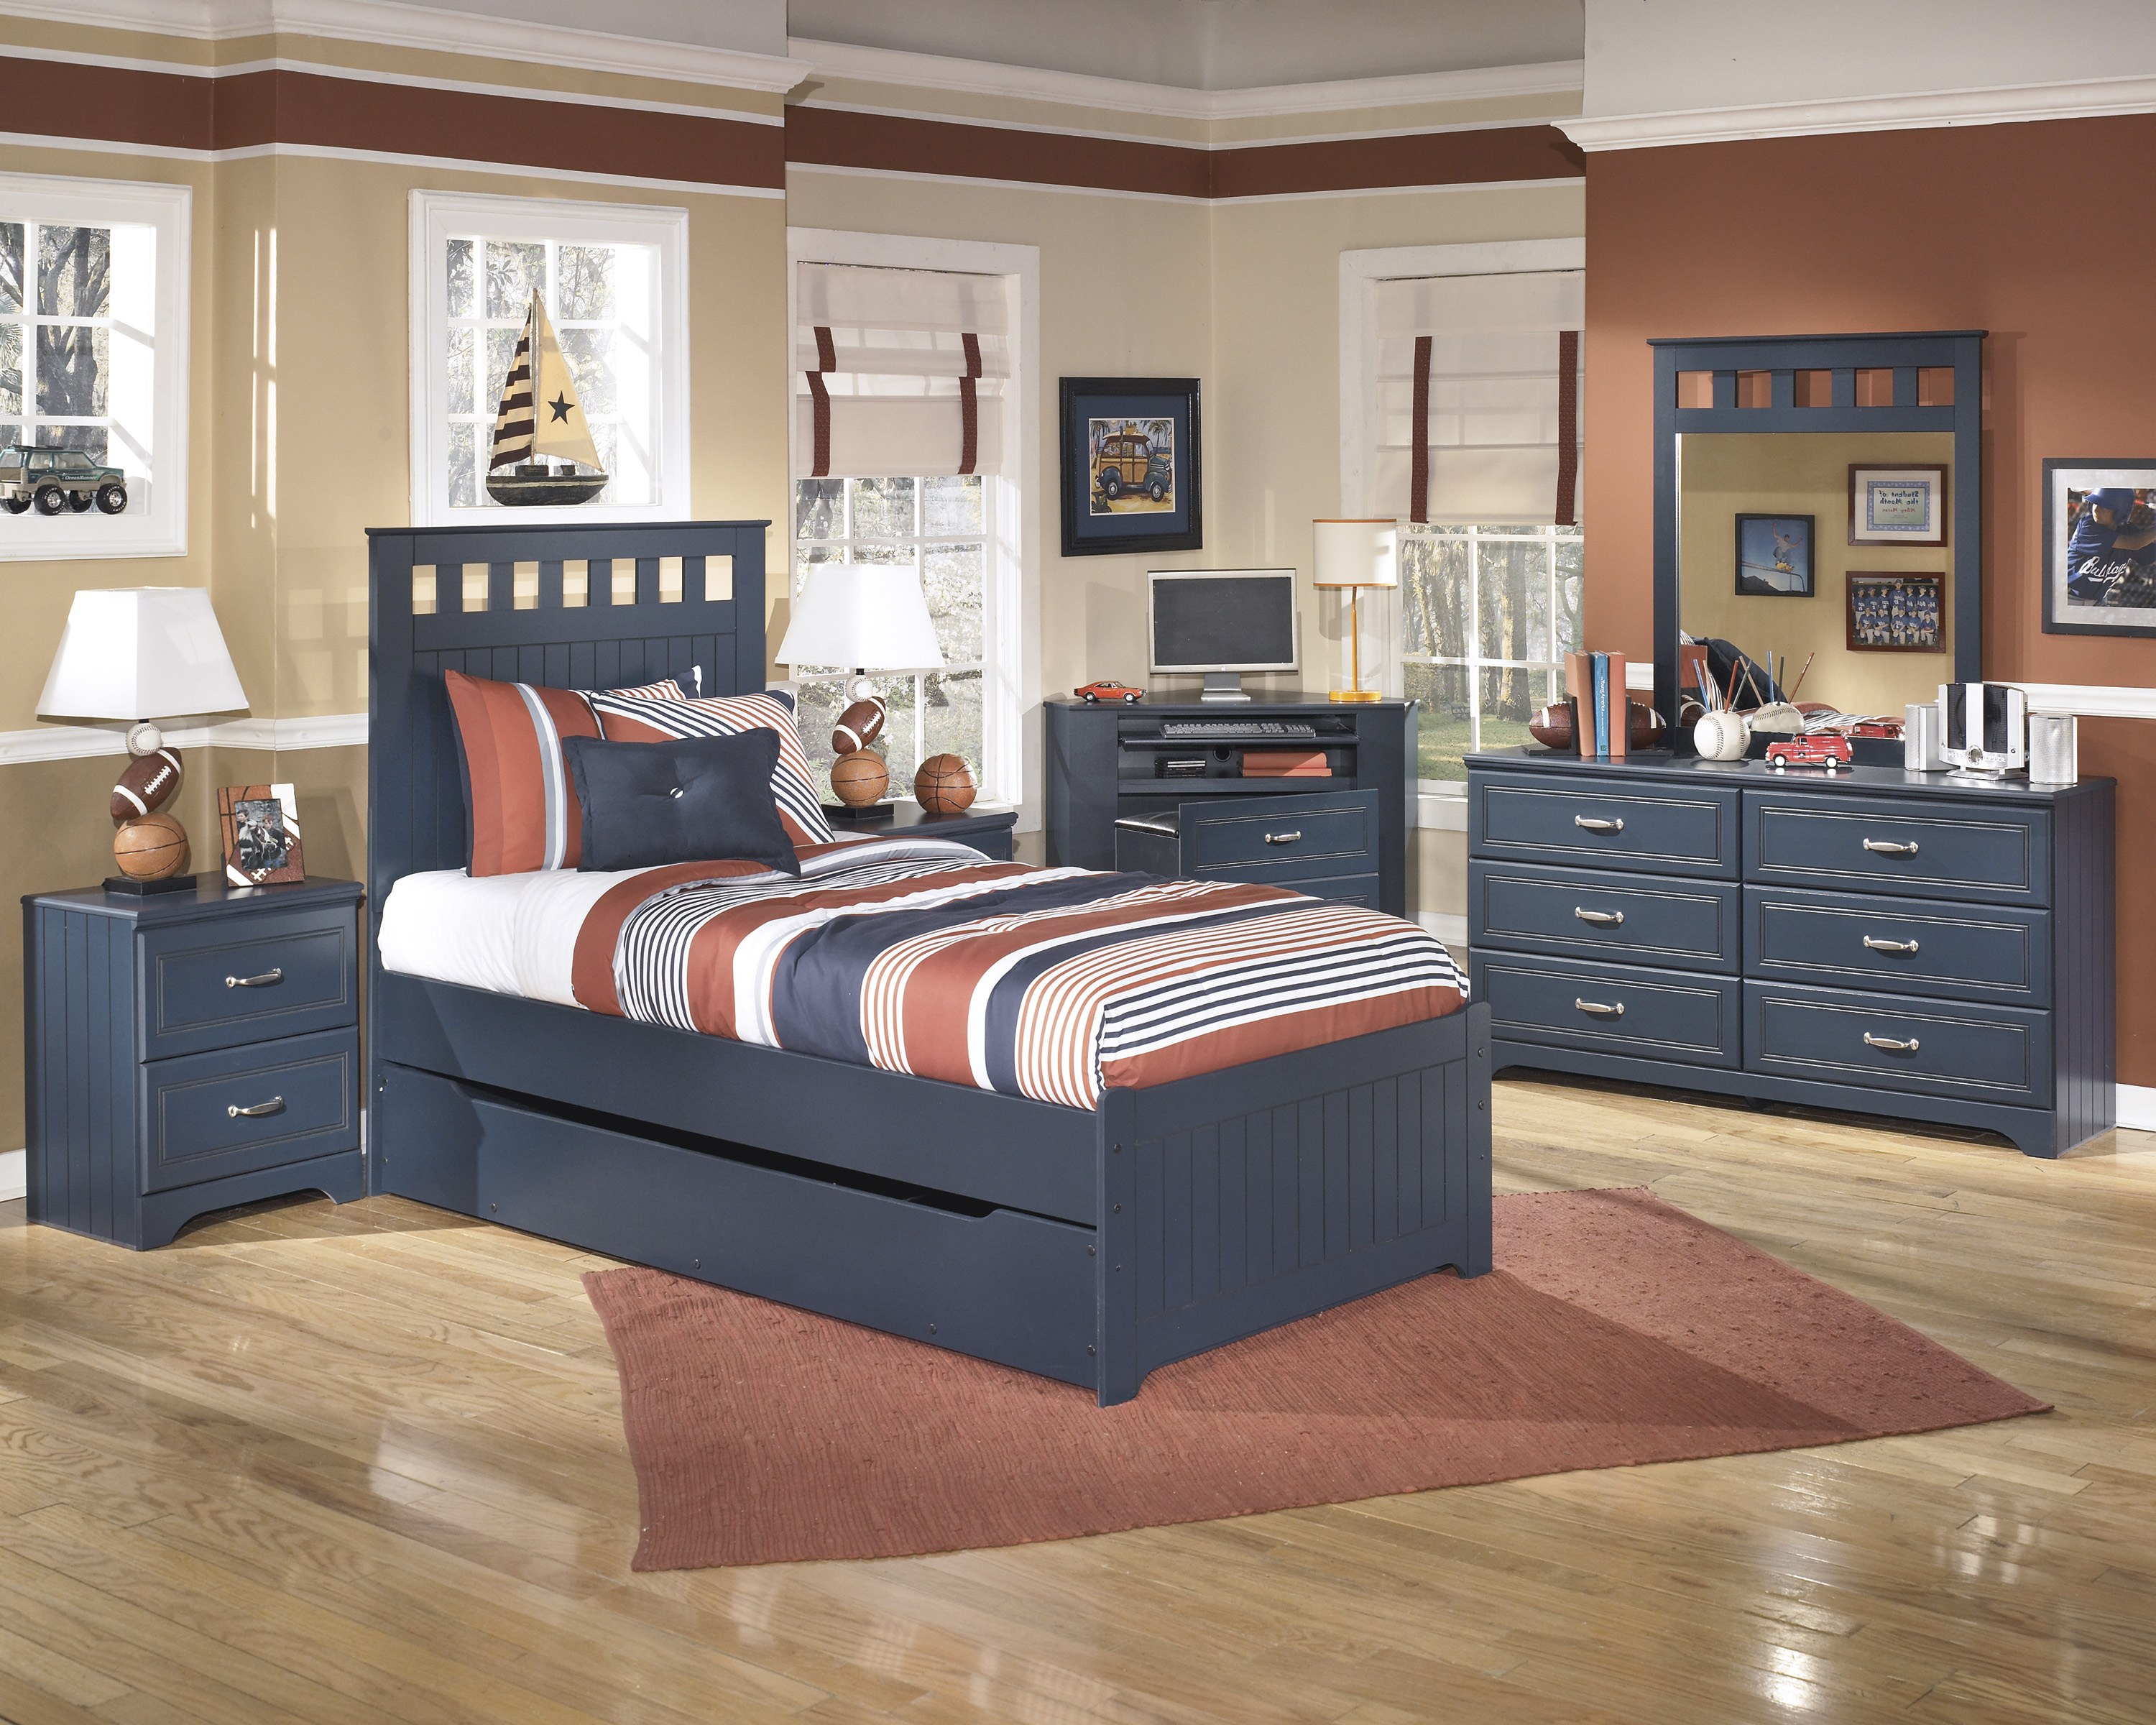 bookcase co instructions county lounge bed legacy dresser zayley twin conscio